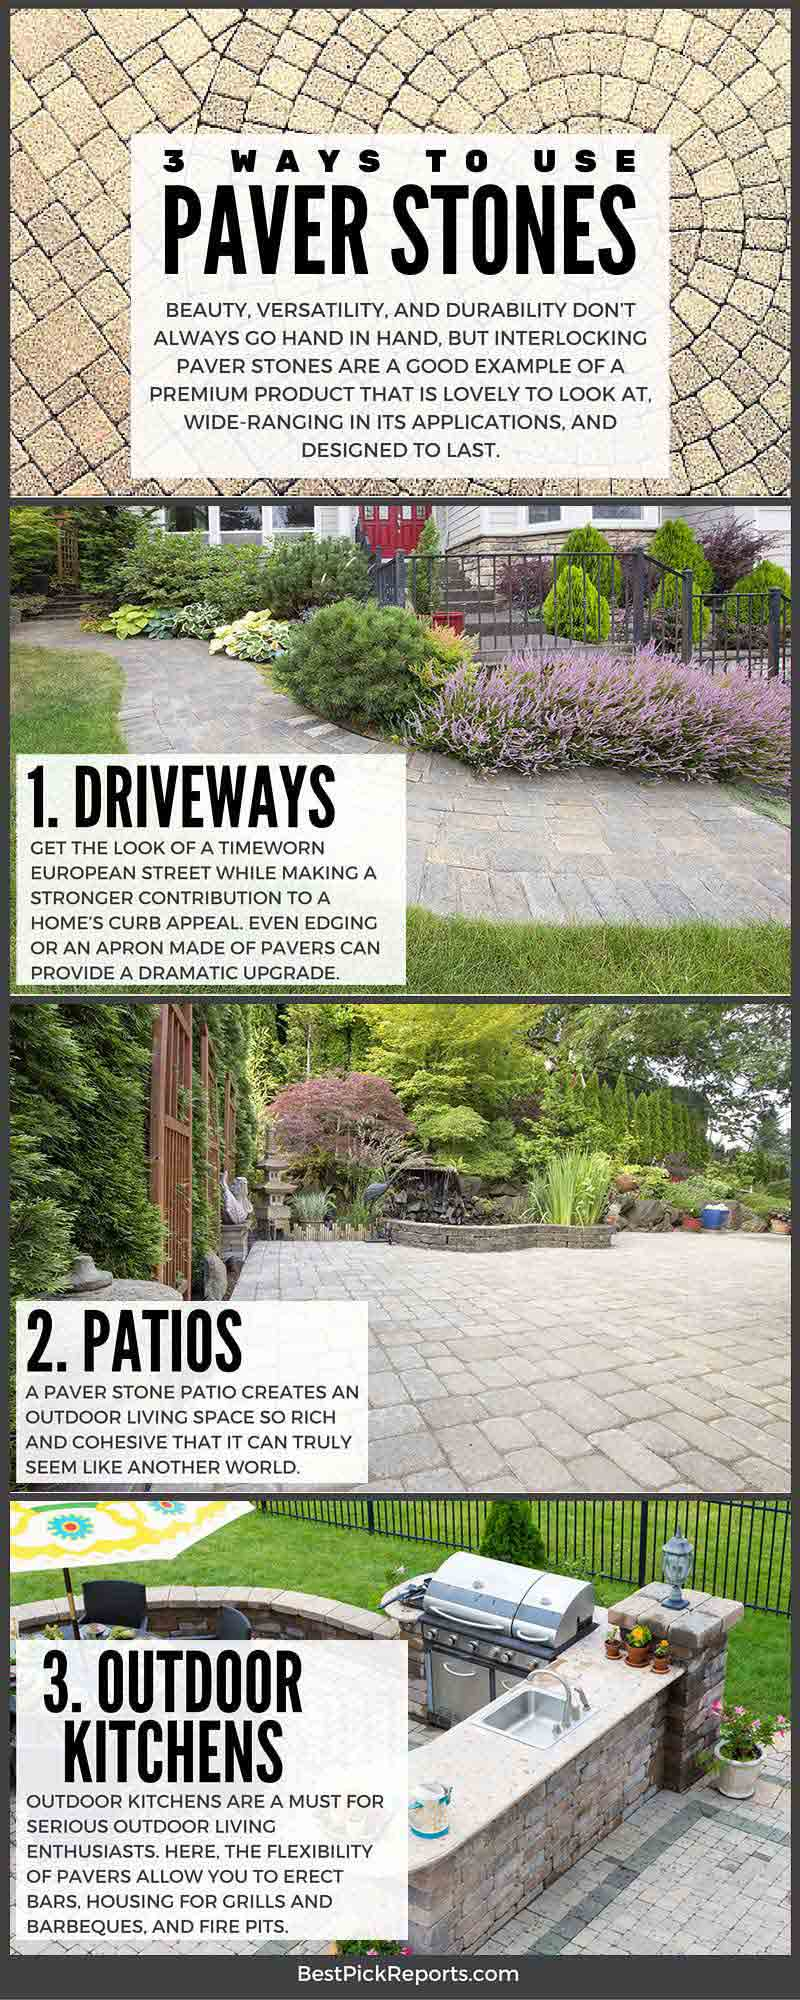 3 Ways to Use Paver Stones